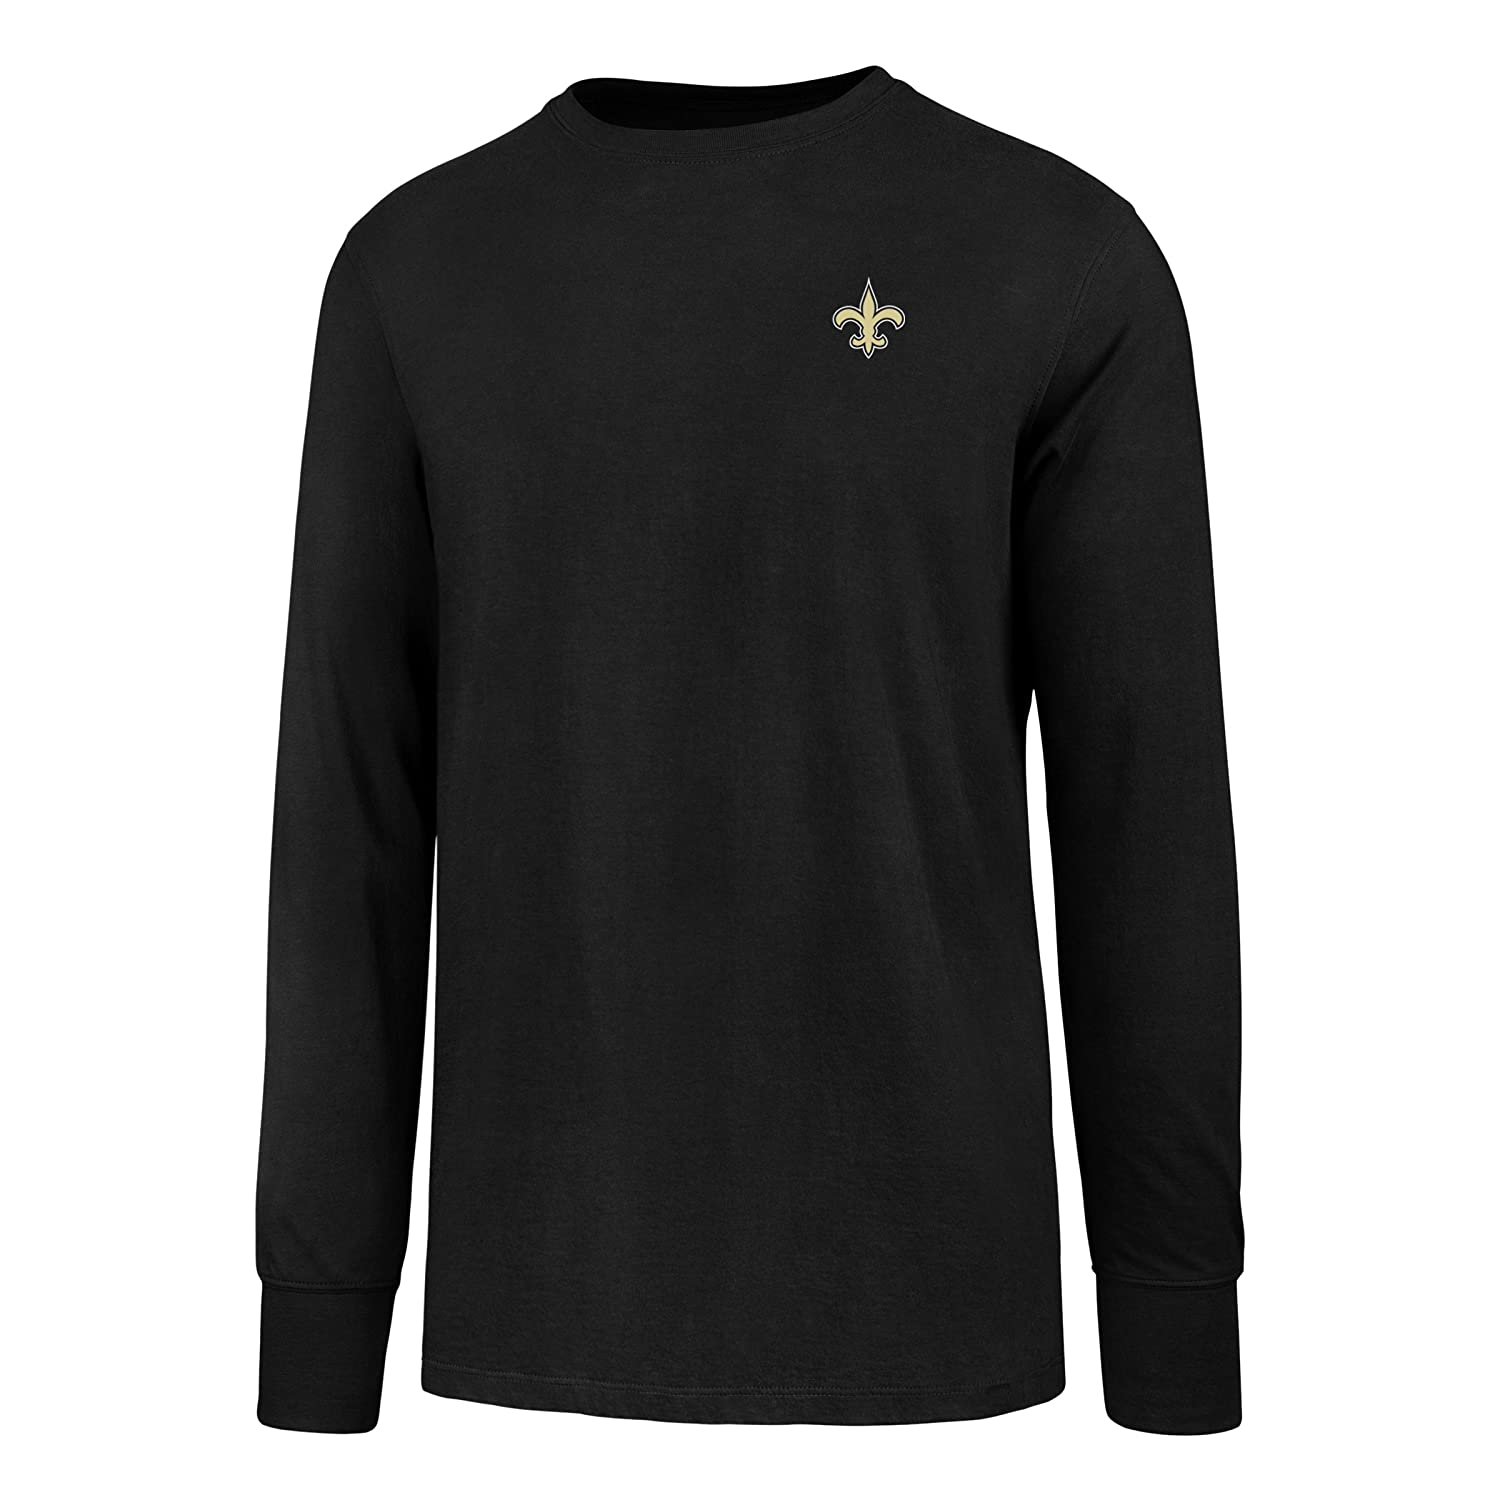 factory authentic 071be 8d97c OTS NFL Mens NFL New Orleans Saints Men's Rival Long Sleeve Tee